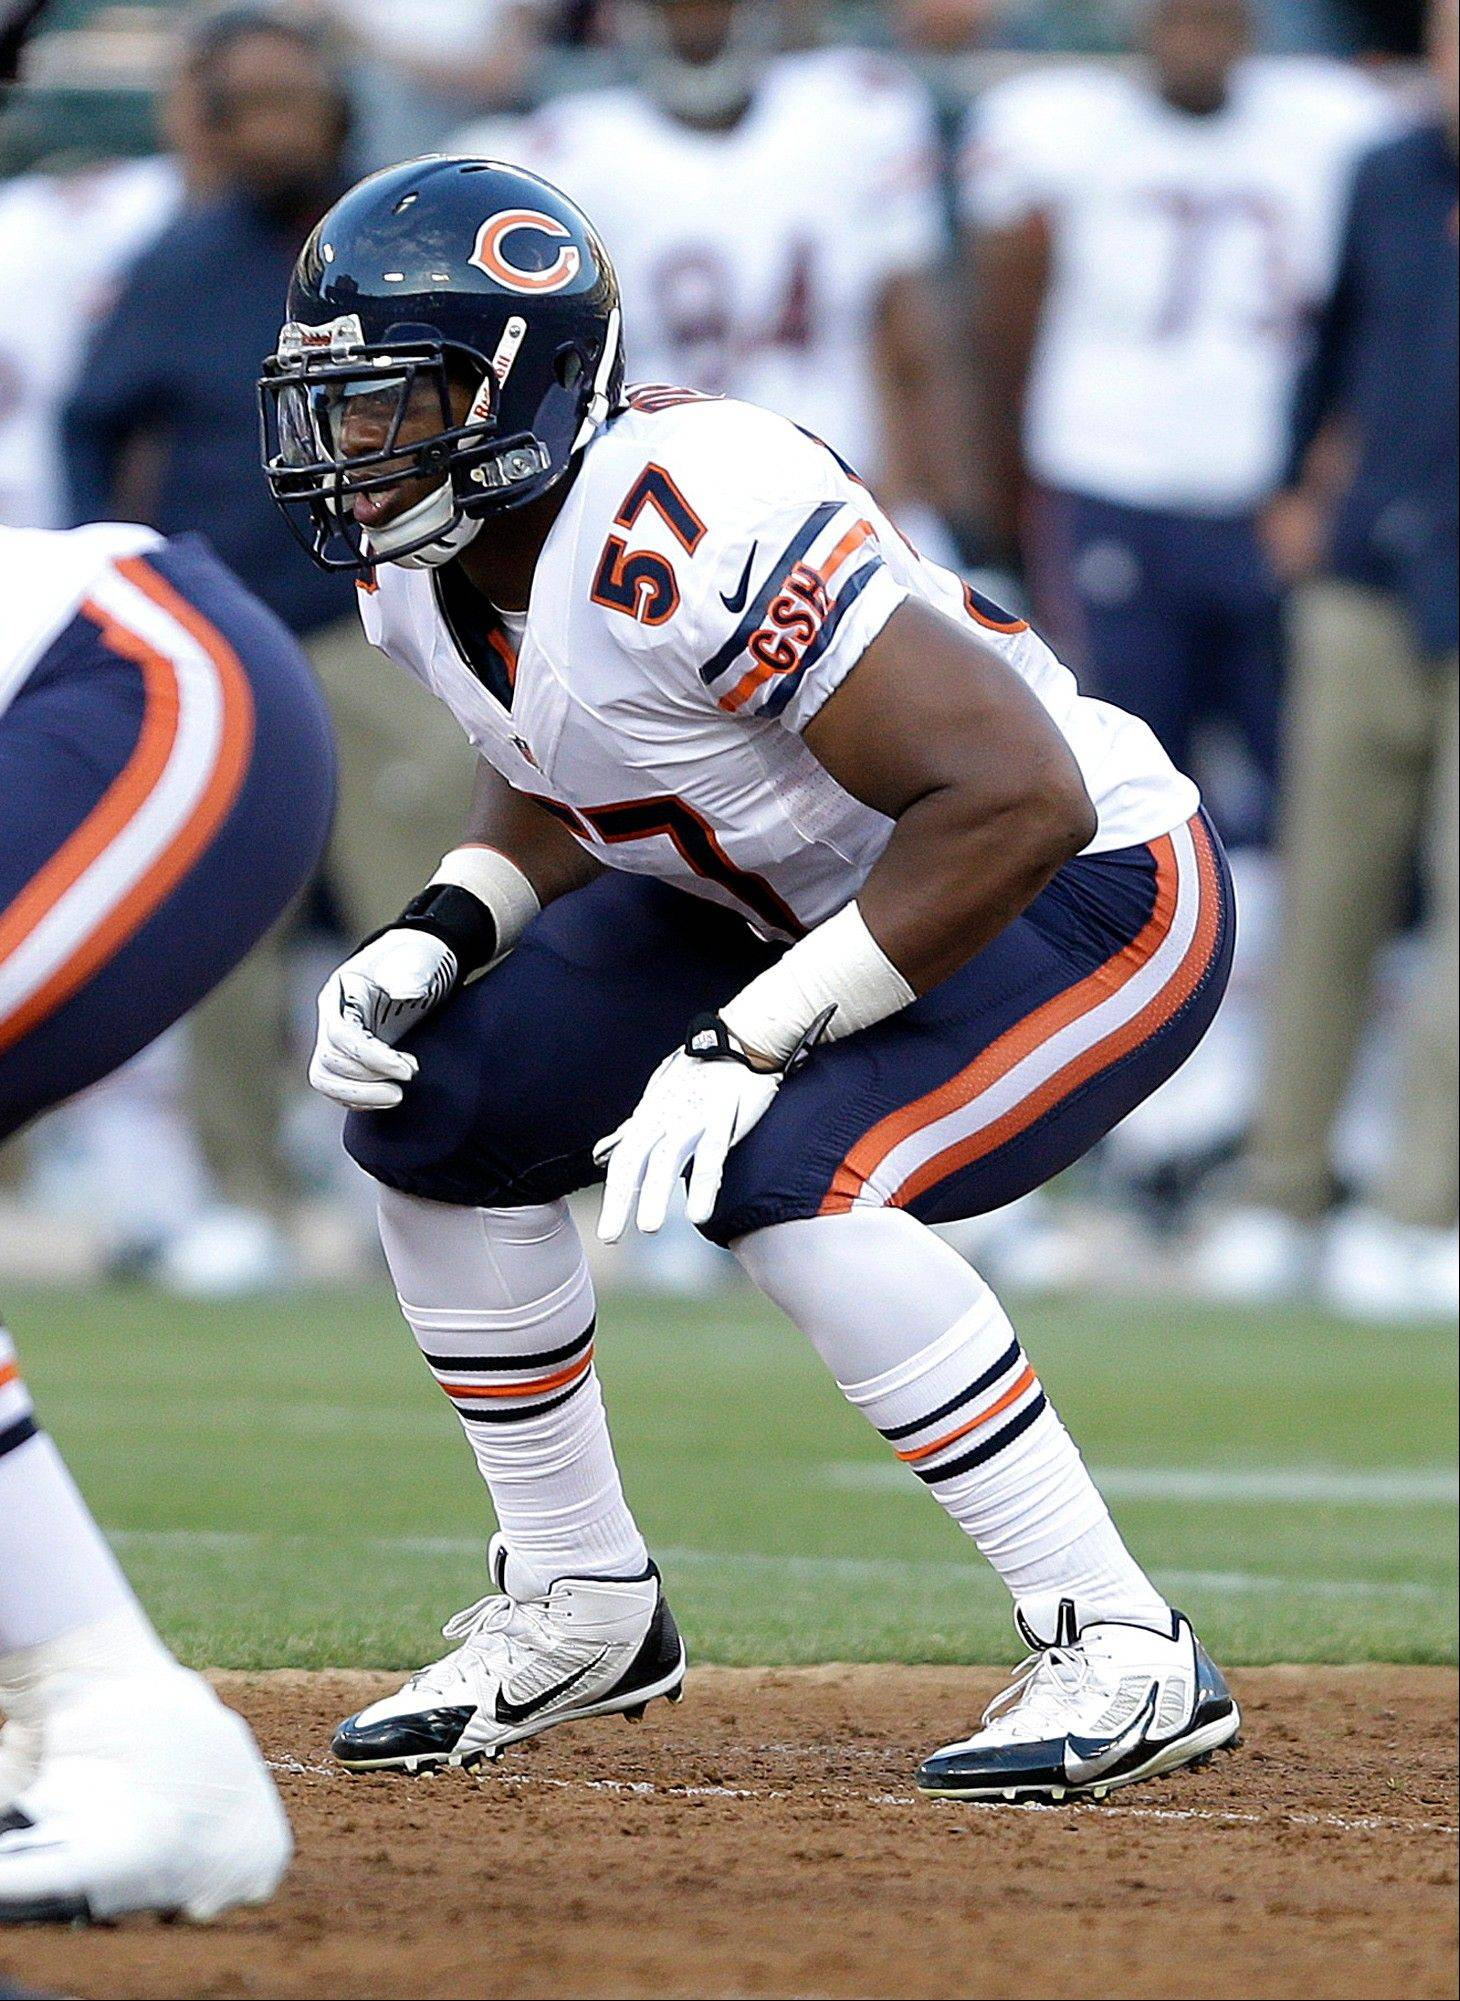 Bears rookie linebacker Jon Bostic says practicing against the team�s offense is good preparation for facing opponents.